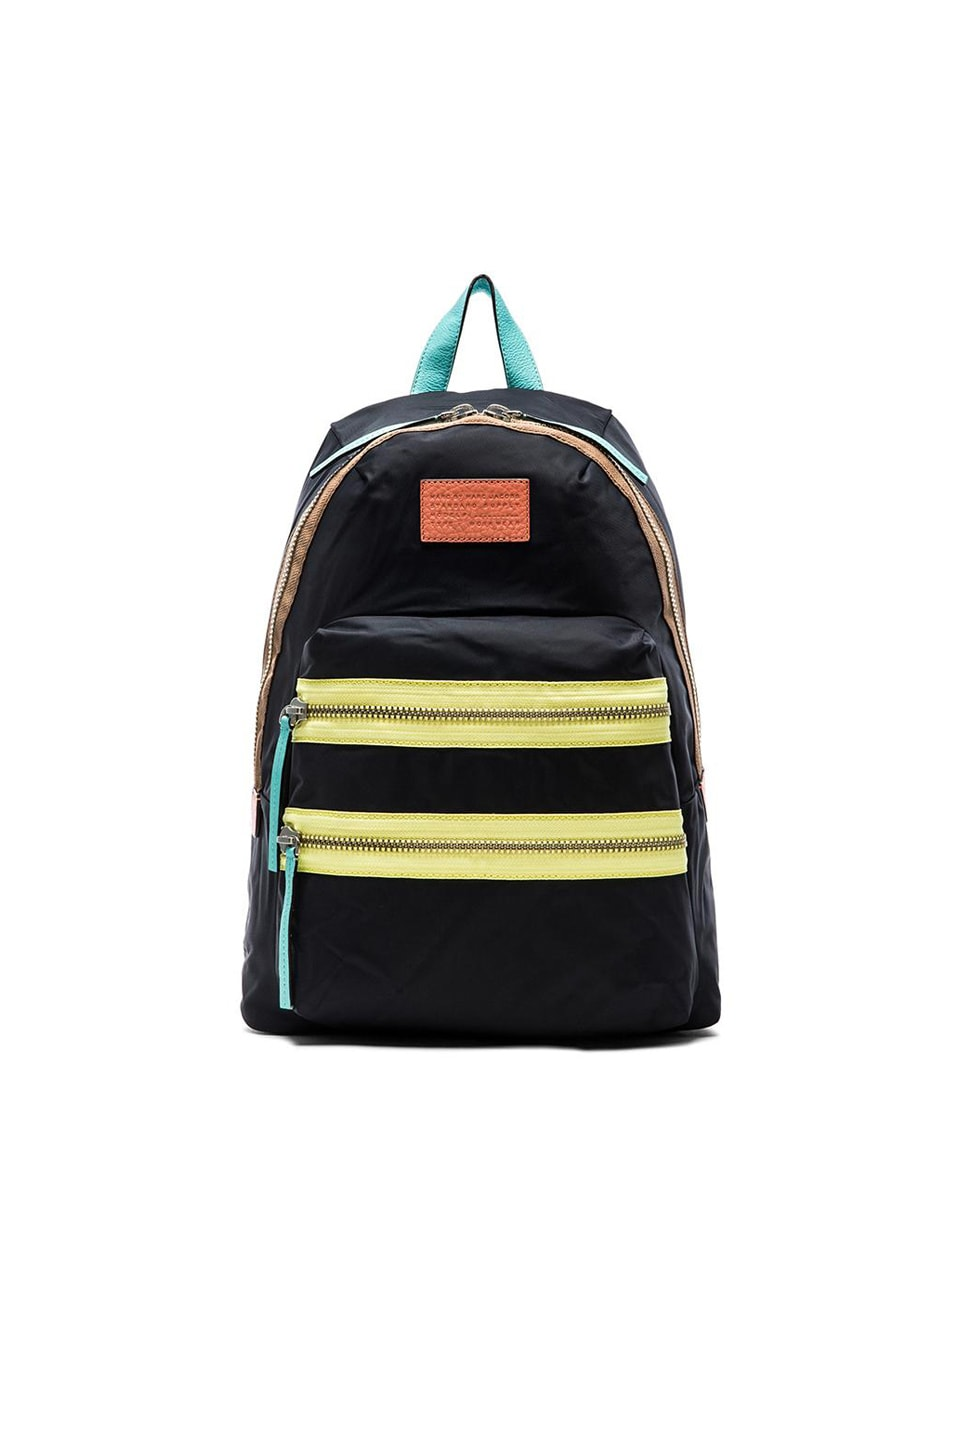 Marc by Marc Jacobs Domo Arigato Packrat Backpack in Atlantic Blue Multi